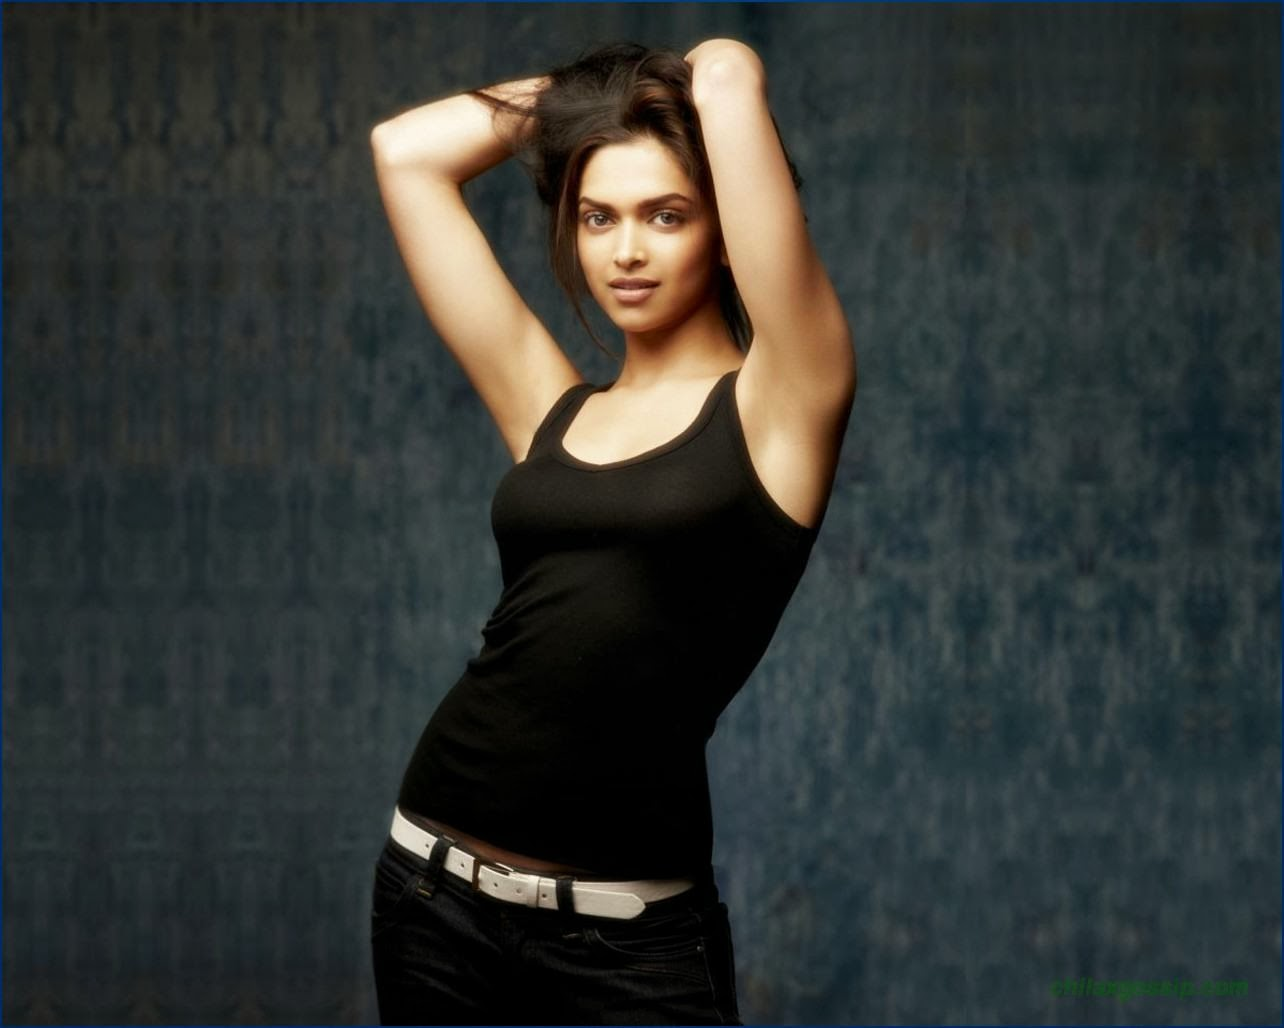 deepika padukone new hd wallpapers 2014 - youtube cool wallpapers